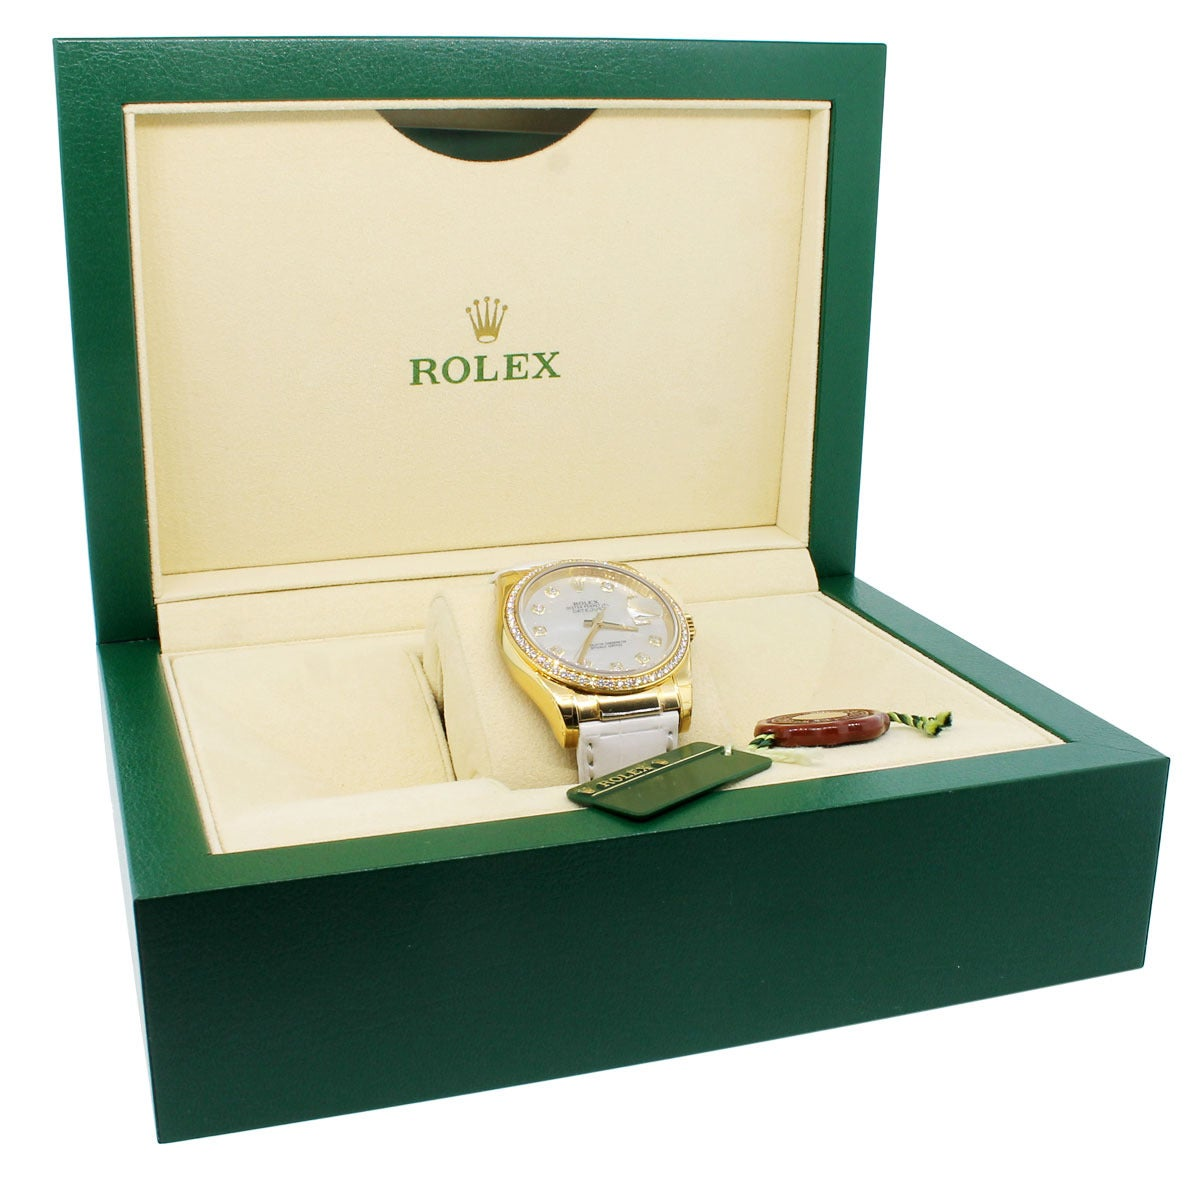 Rolex Yellow Gold Datejust Mother of Pearl Diamond Dial Wristwatch Ref 116188 7